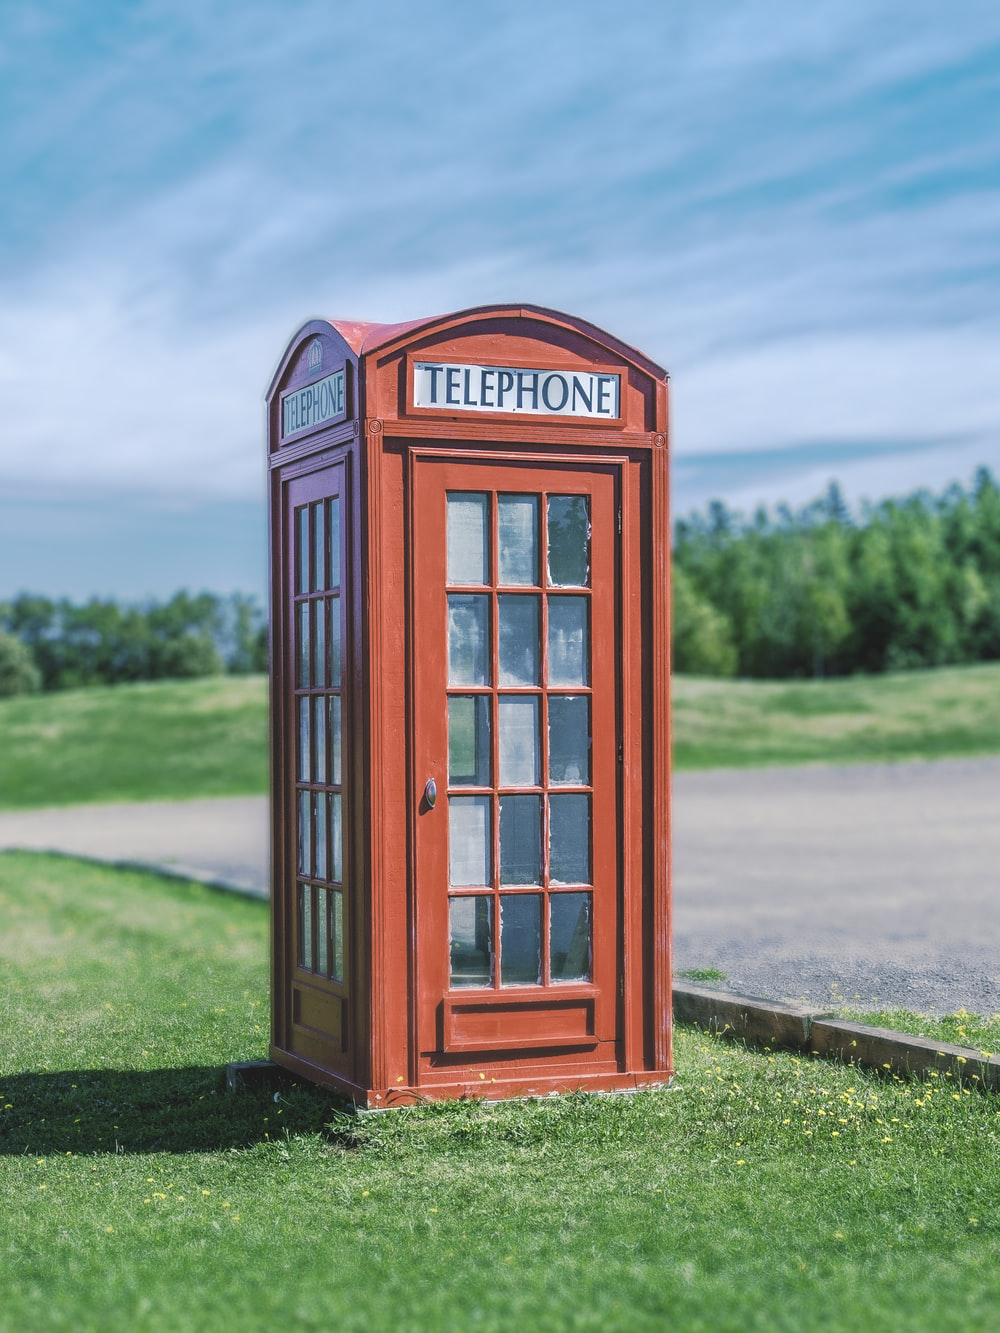 Telephone booth near road